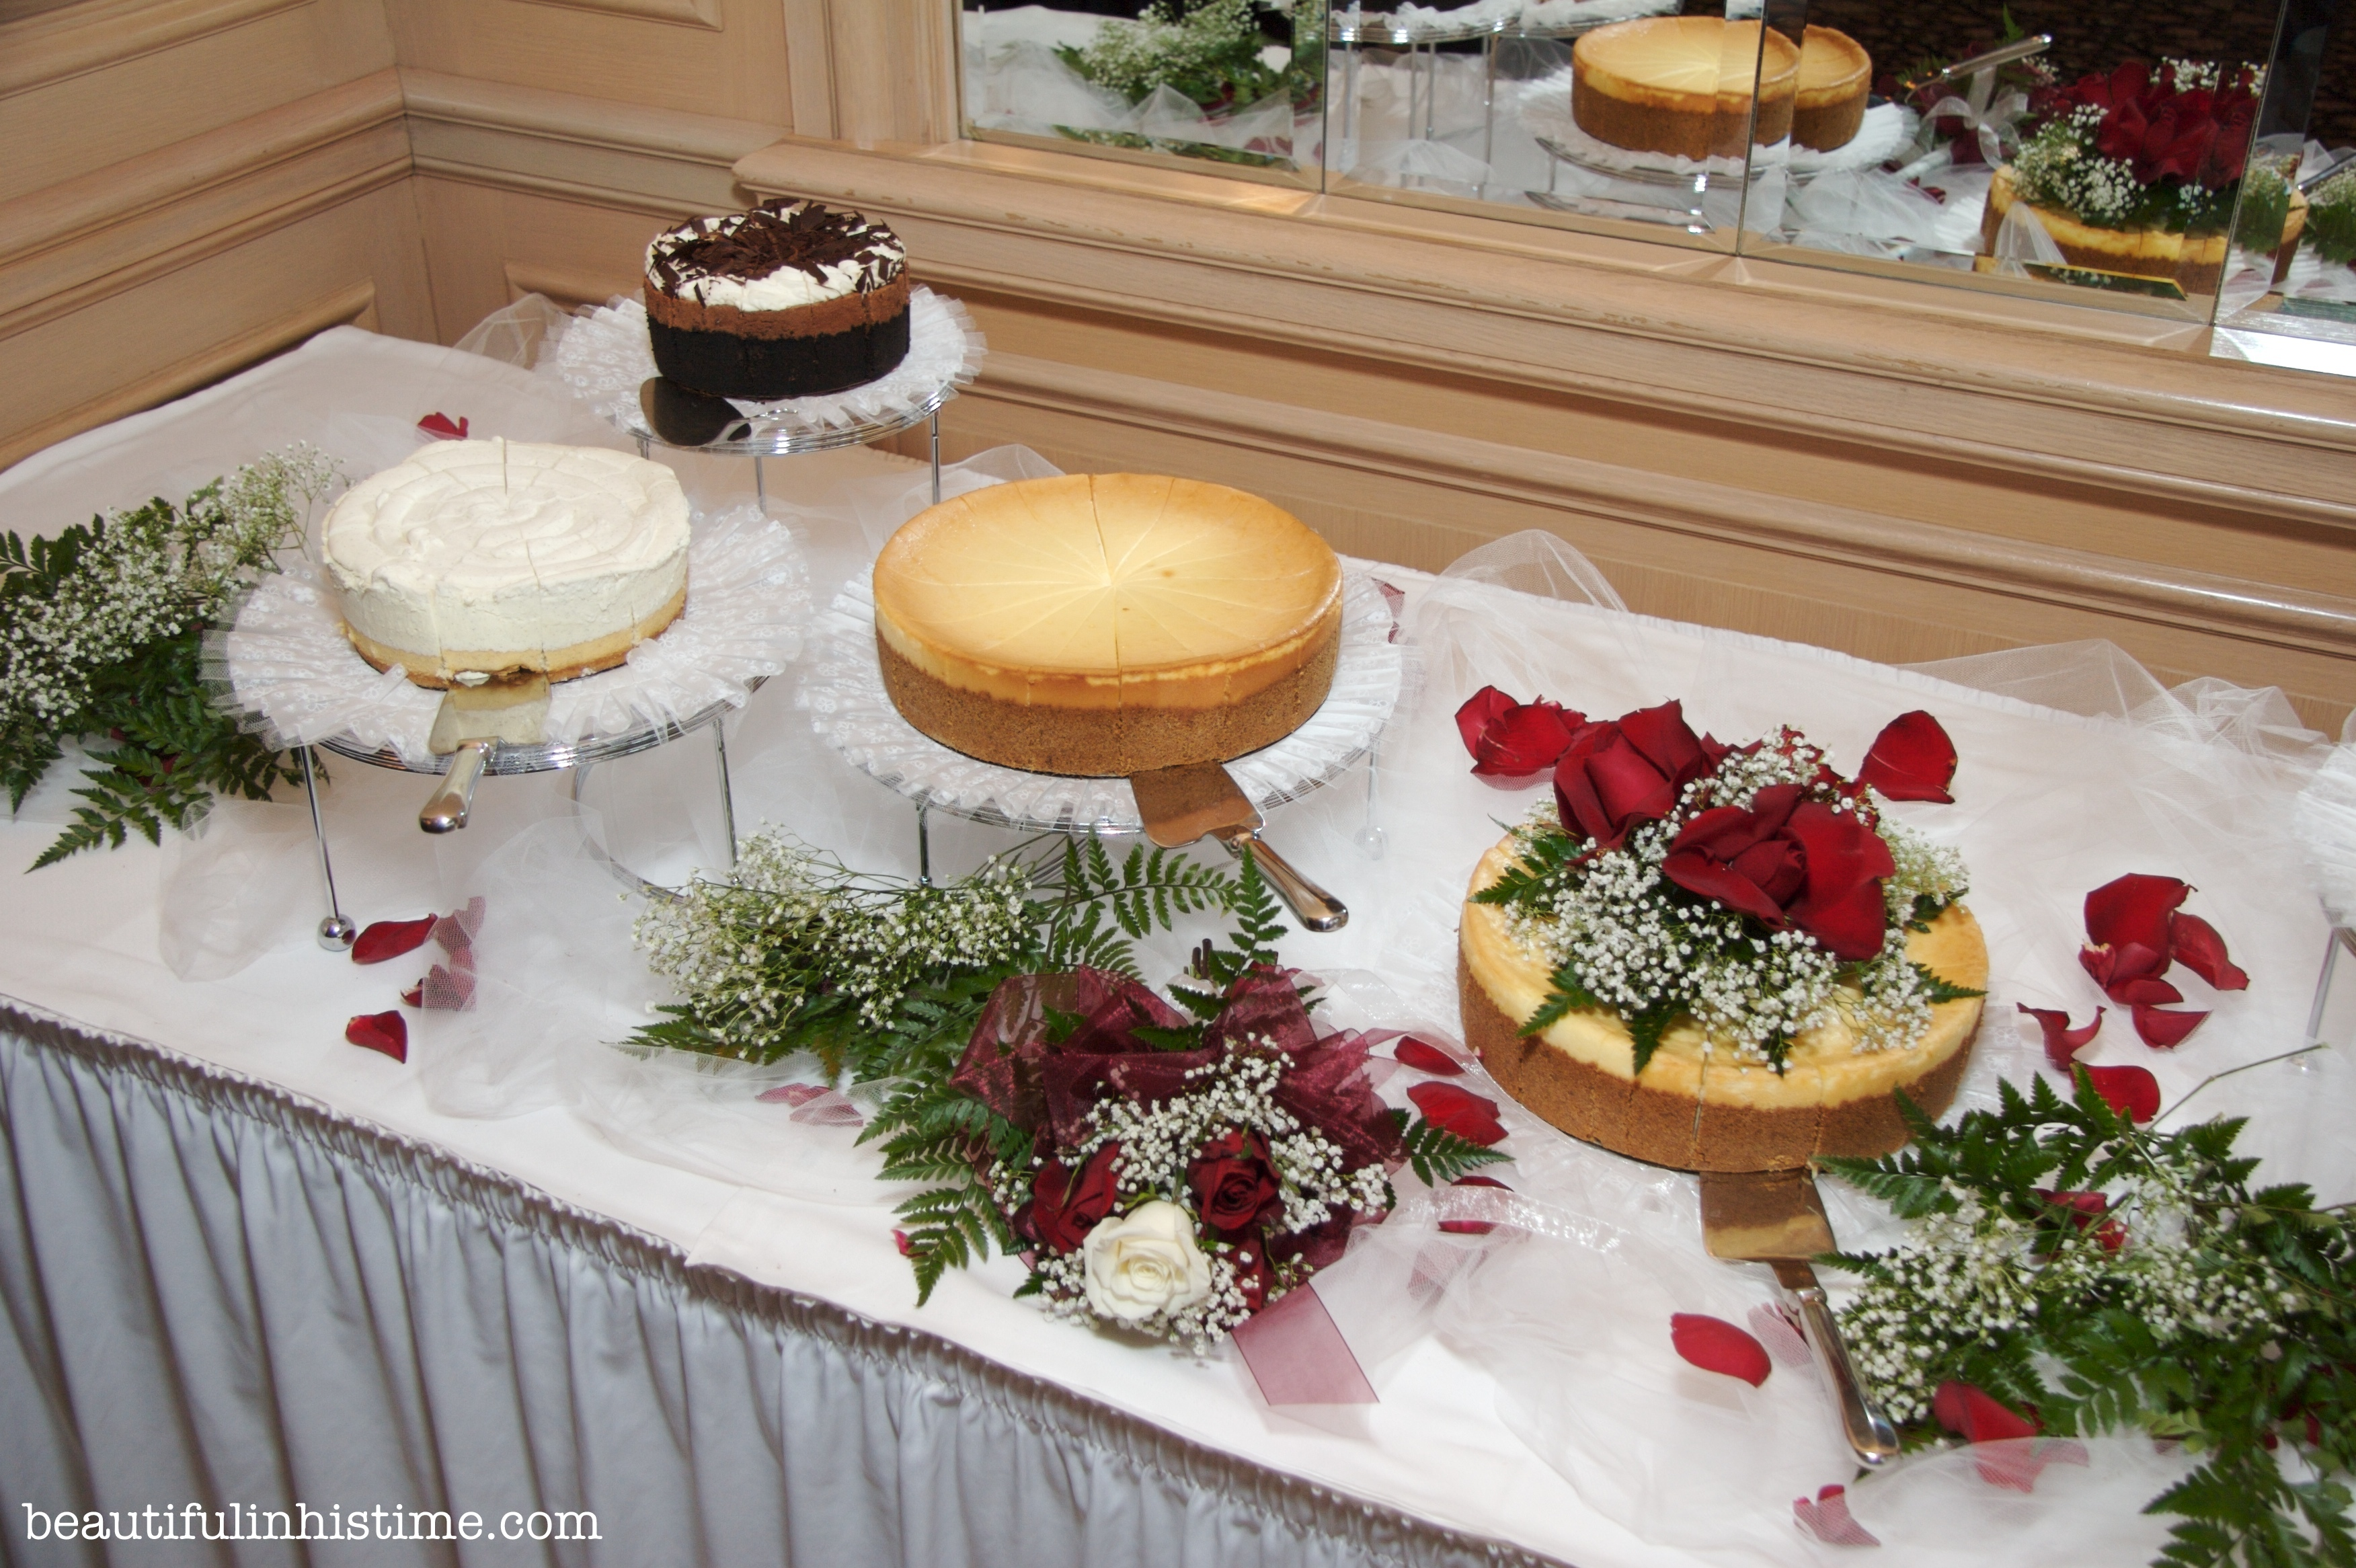 Cheesecake at wedding